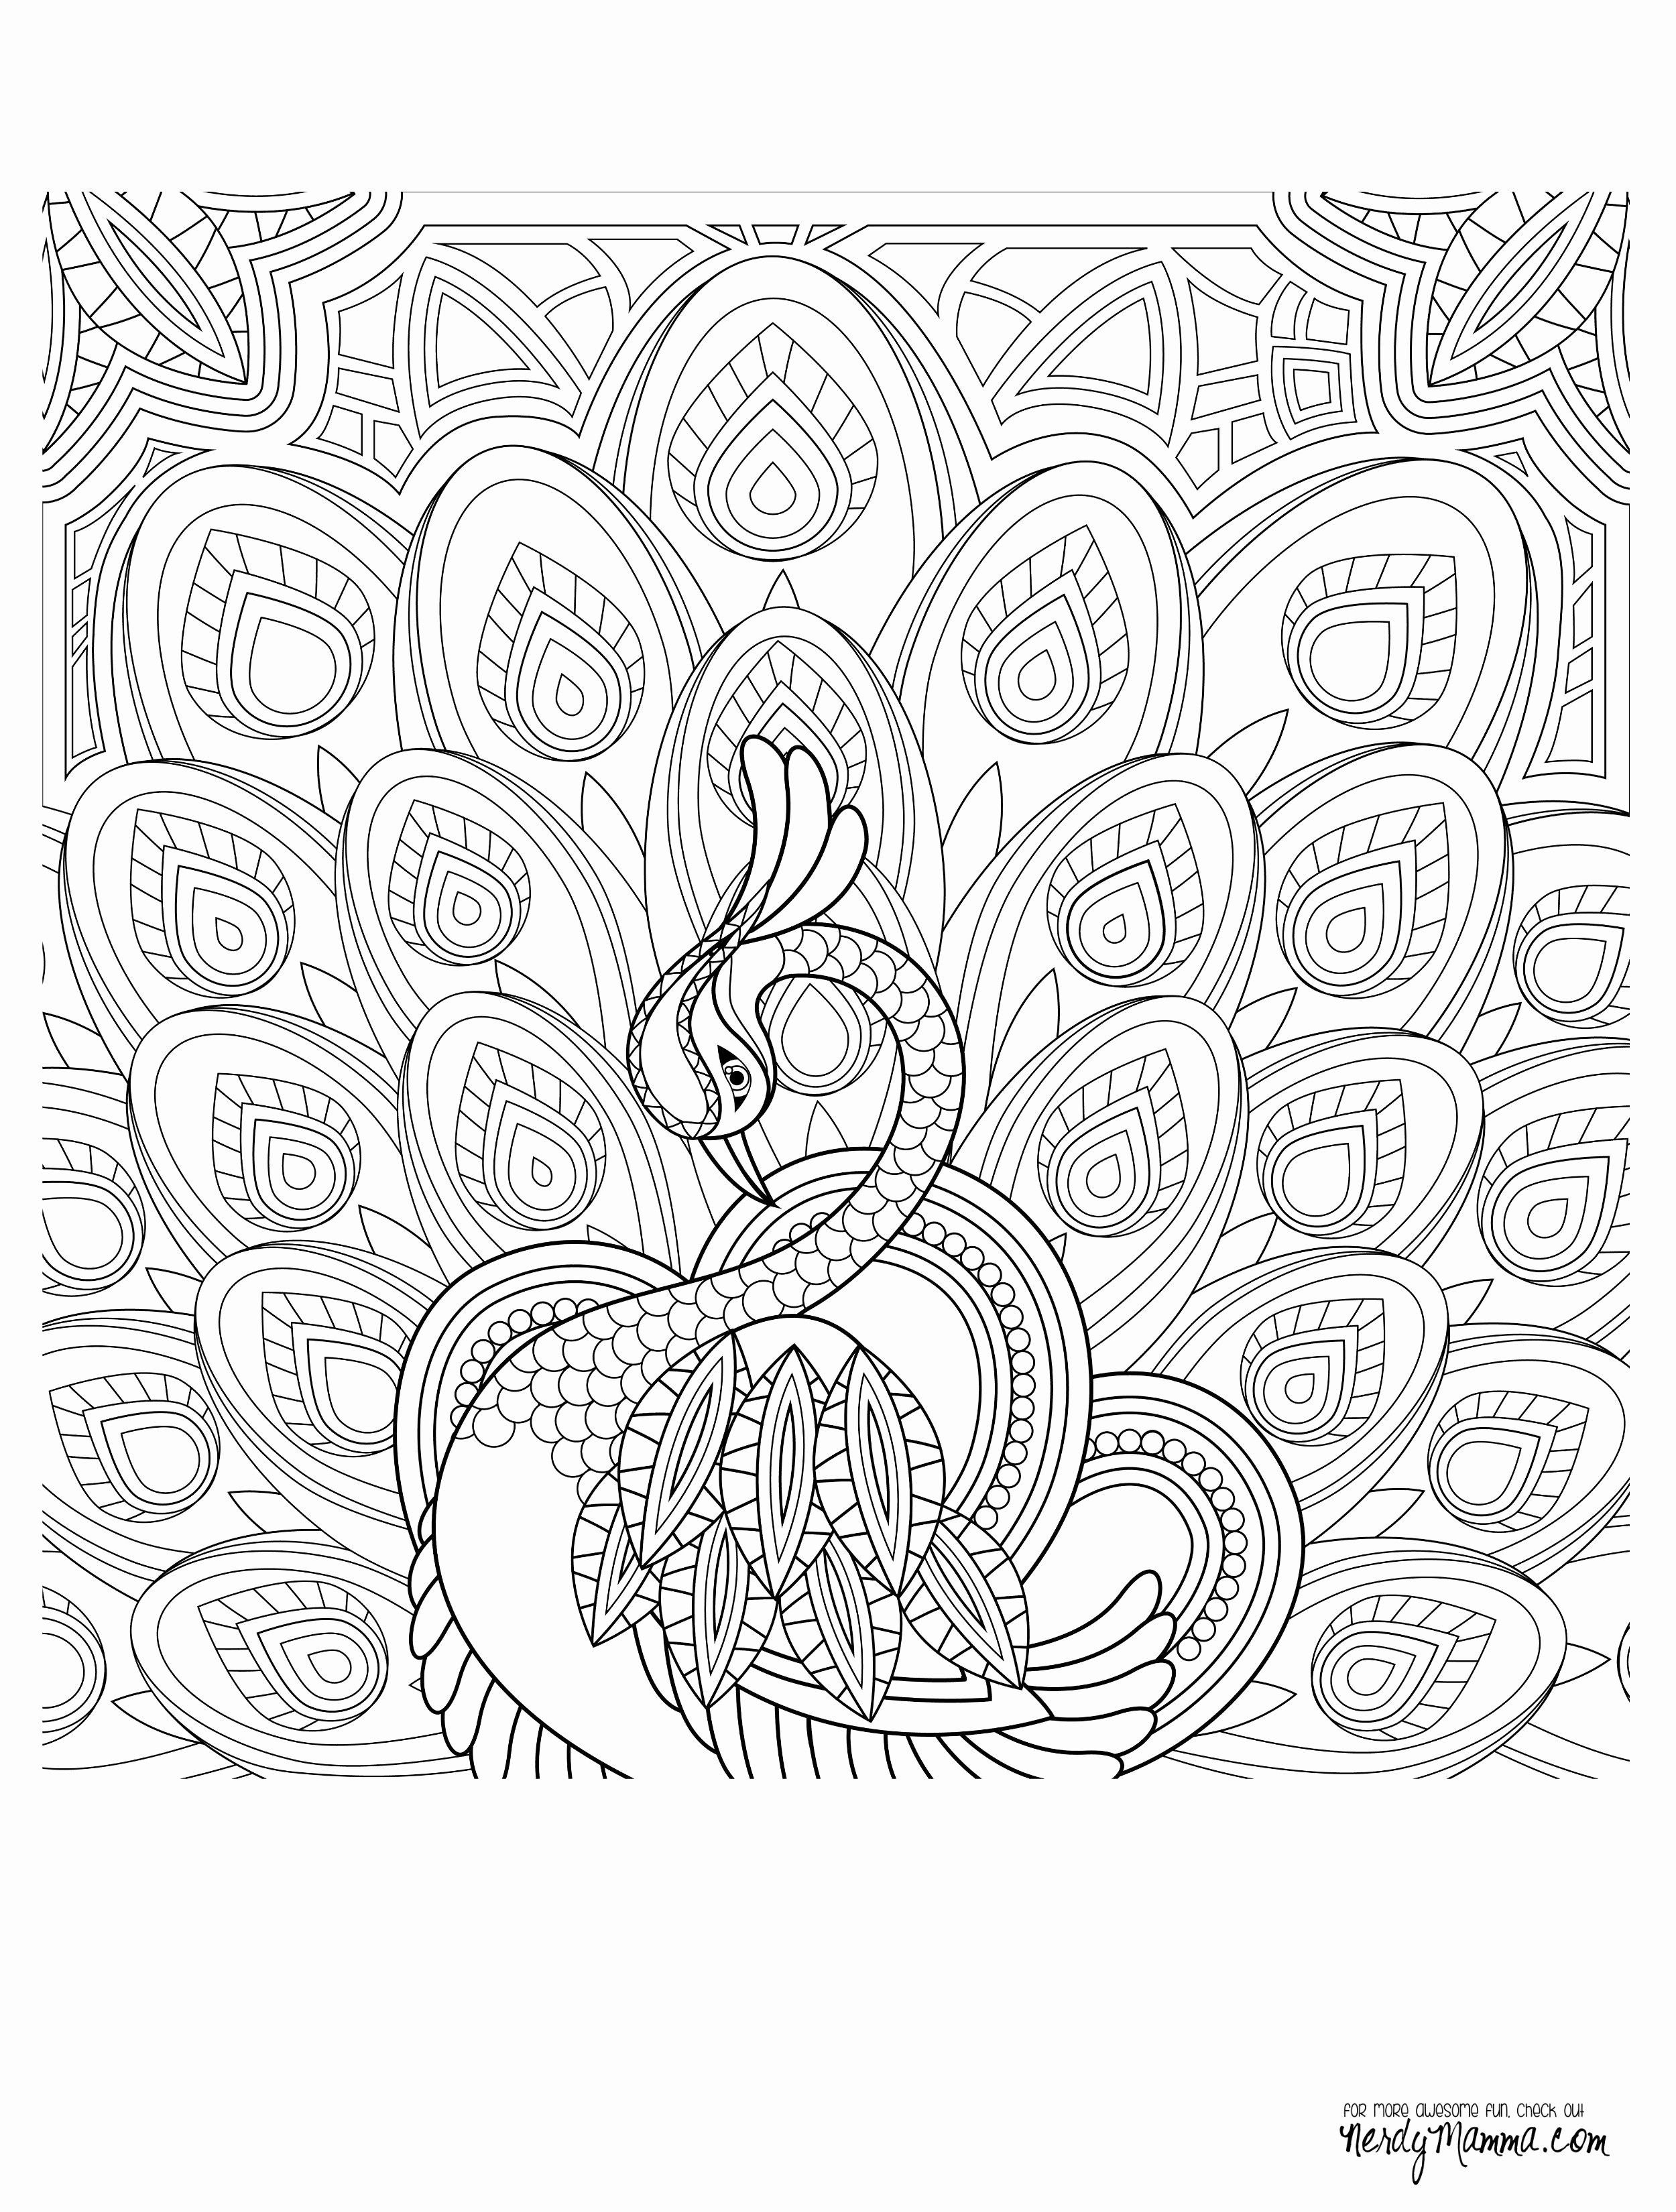 Skull Printable Coloring Pages  Collection 9l - To print for your project